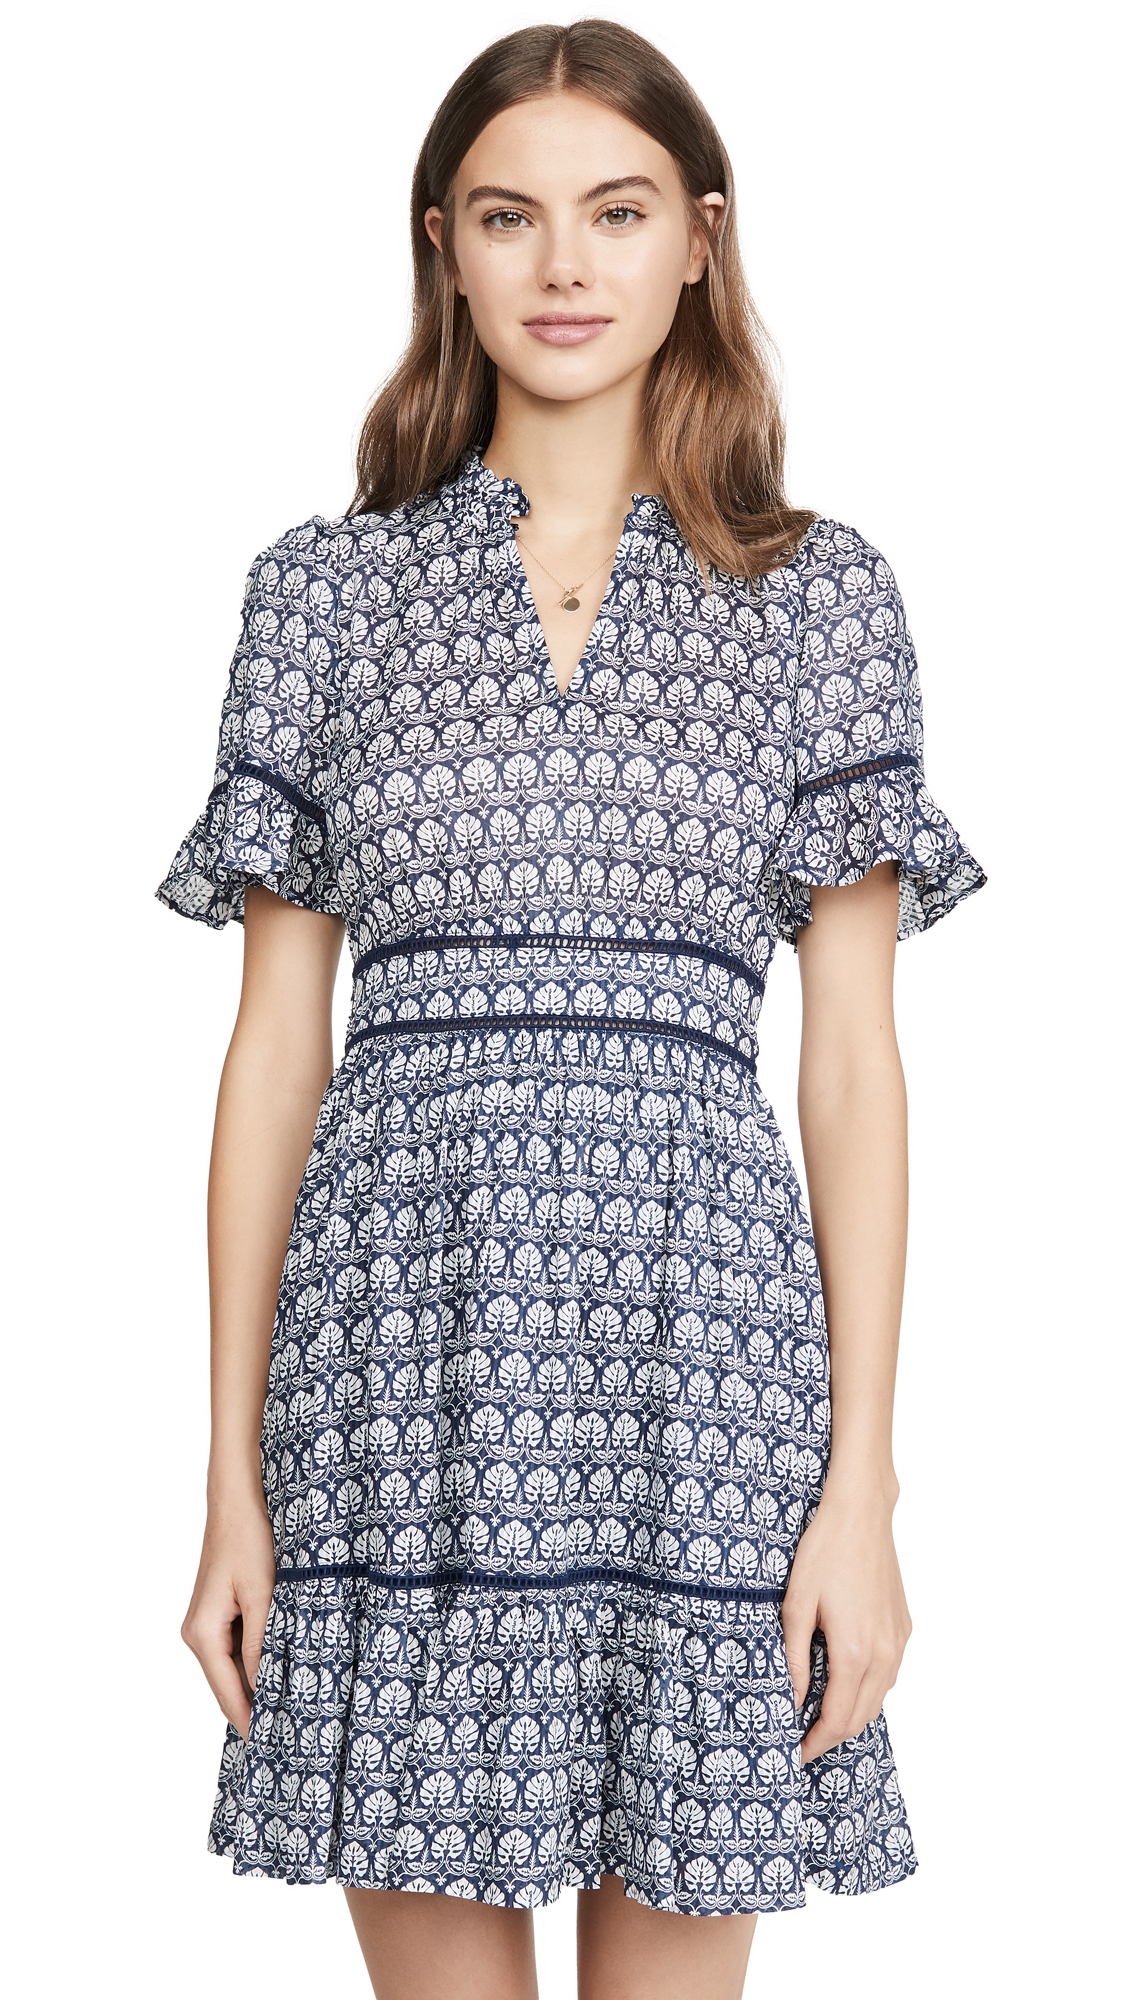 Buy Scotch & Soda/Maison Scotch online - photo of Scotch & Soda/Maison Scotch Printed Dress